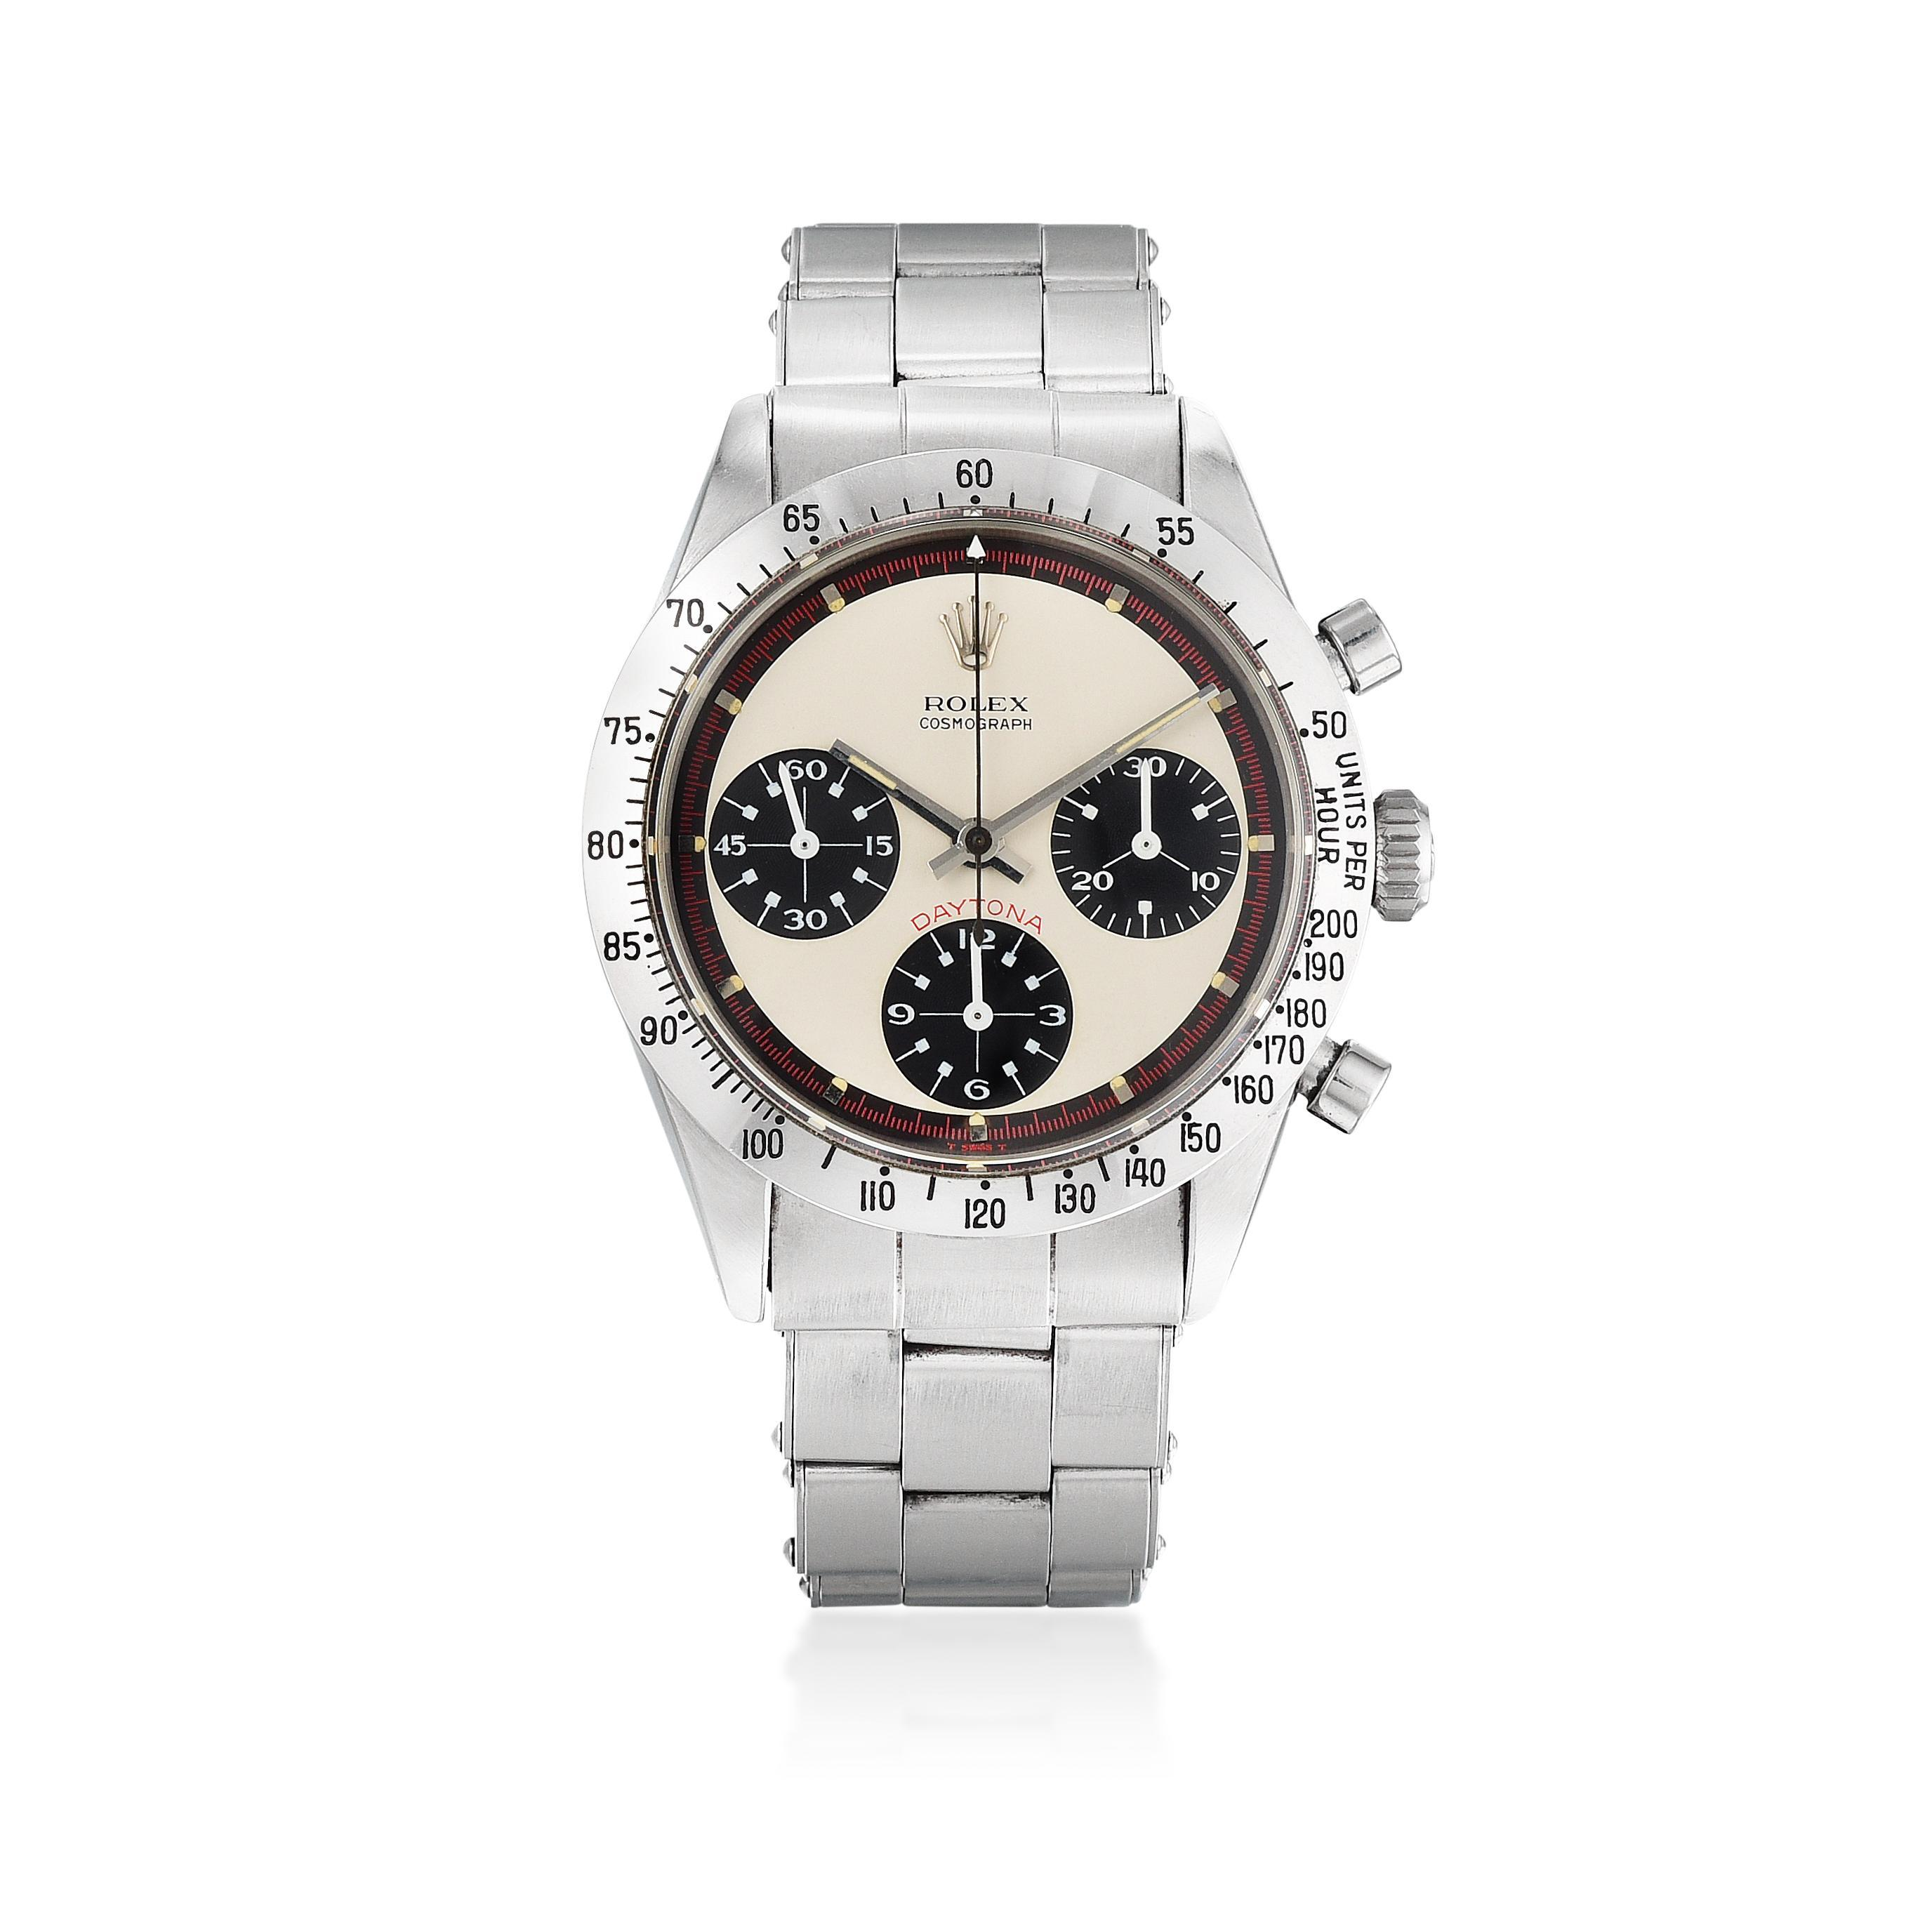 Rolex Paul Newman Daytona Fetches 275 000 At Fortuna S Important